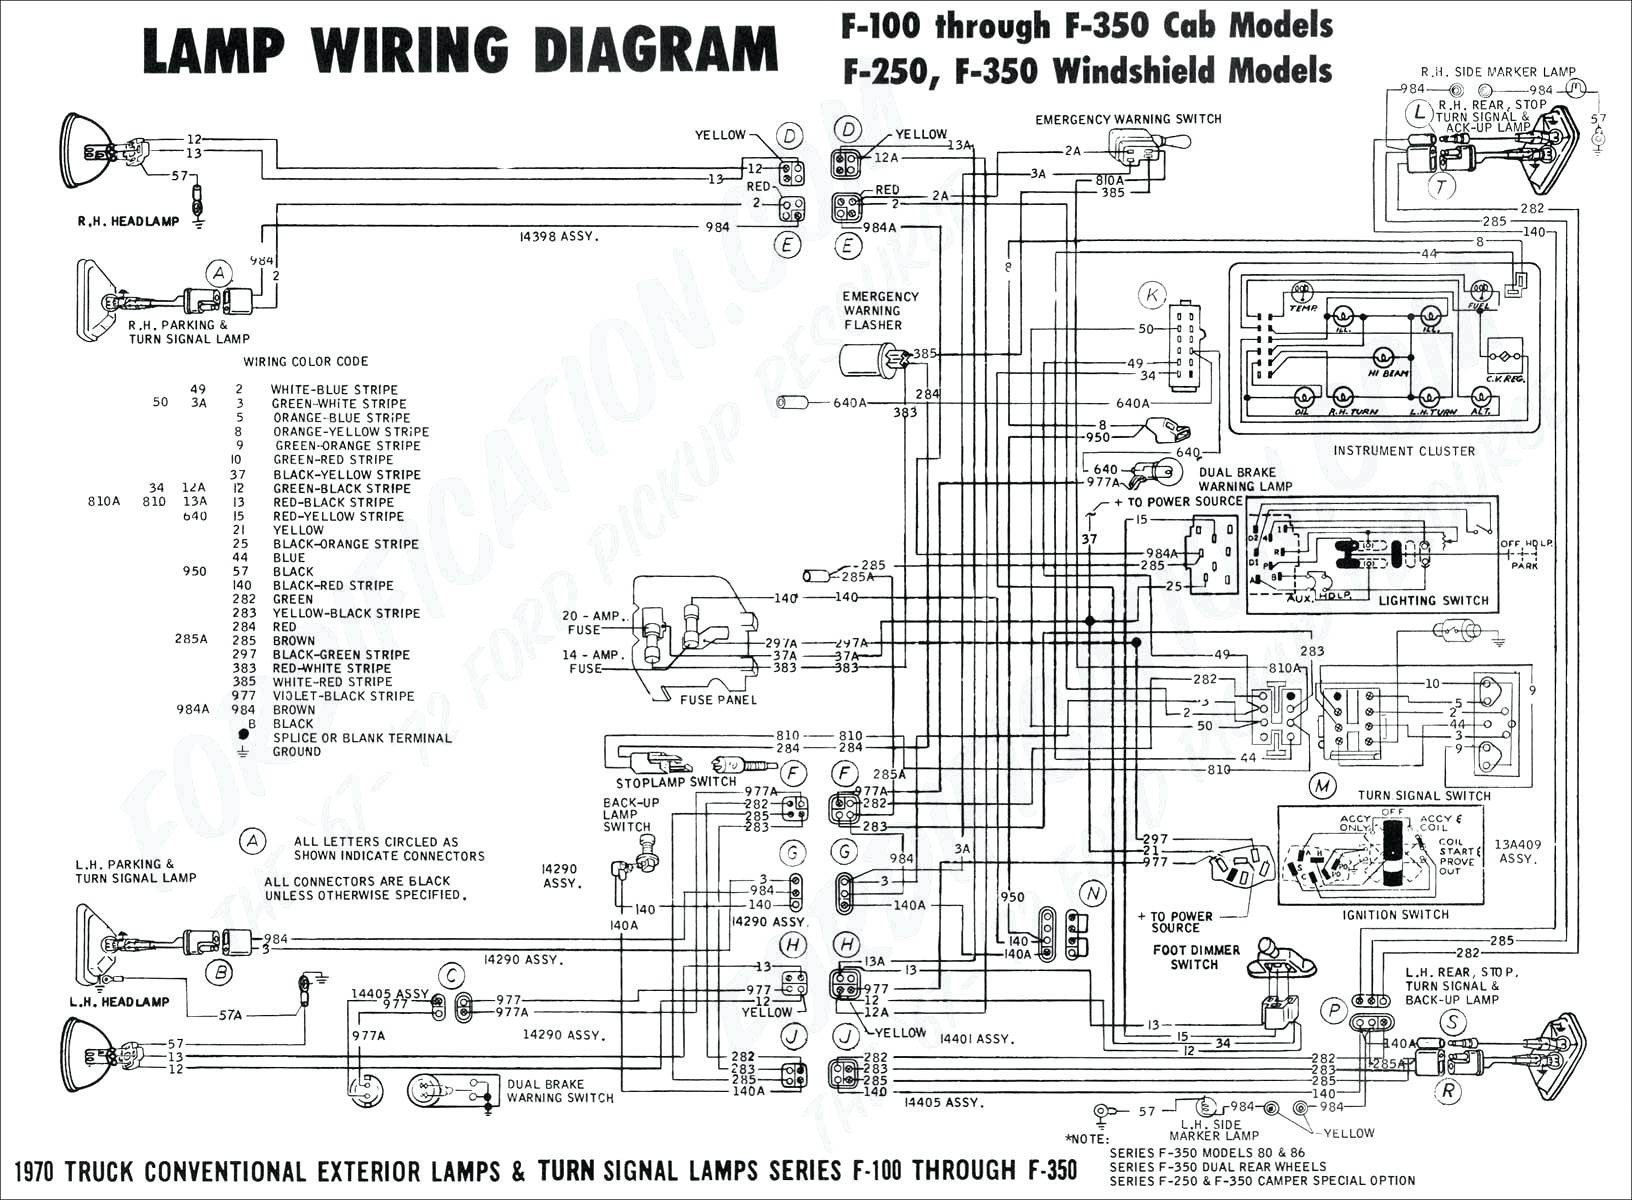 2000 ford f350 wiring diagram | closing-governm the wiring diagram -  closing-governm.e-hipoteka.eu  e-hipoteka.eu